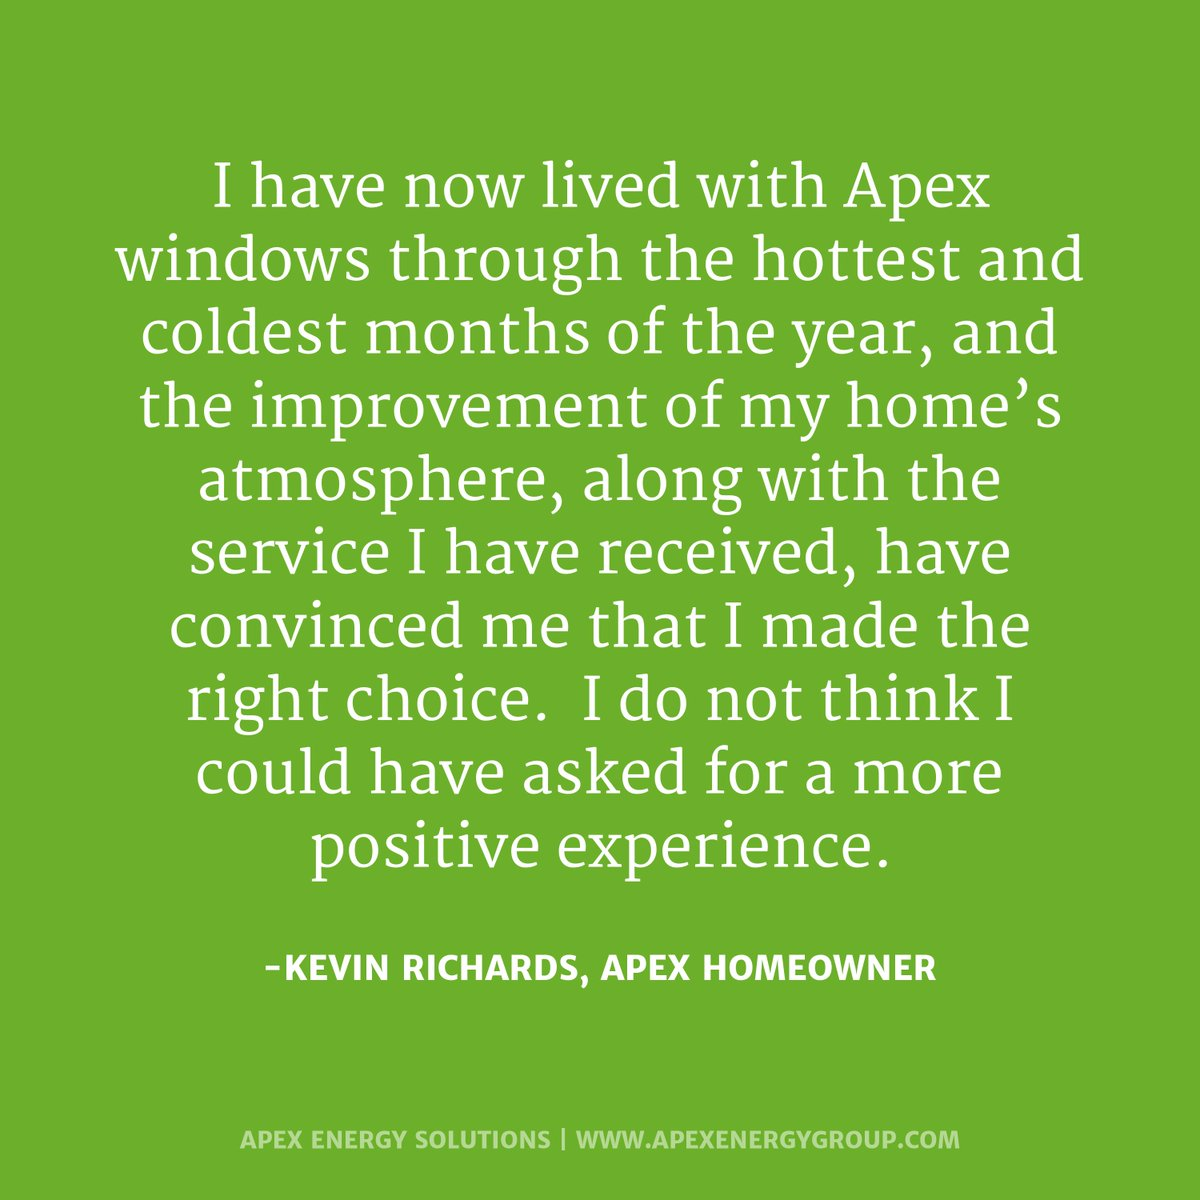 Amusing An Absolutely Review From A Satisfied Homeowner Check Out Full Review Apex Energy Group Twitter Apex Energy Solutions Denver Co Apex Energy Solutions Customer Reviews Joey houzz-03 Apex Energy Solutions